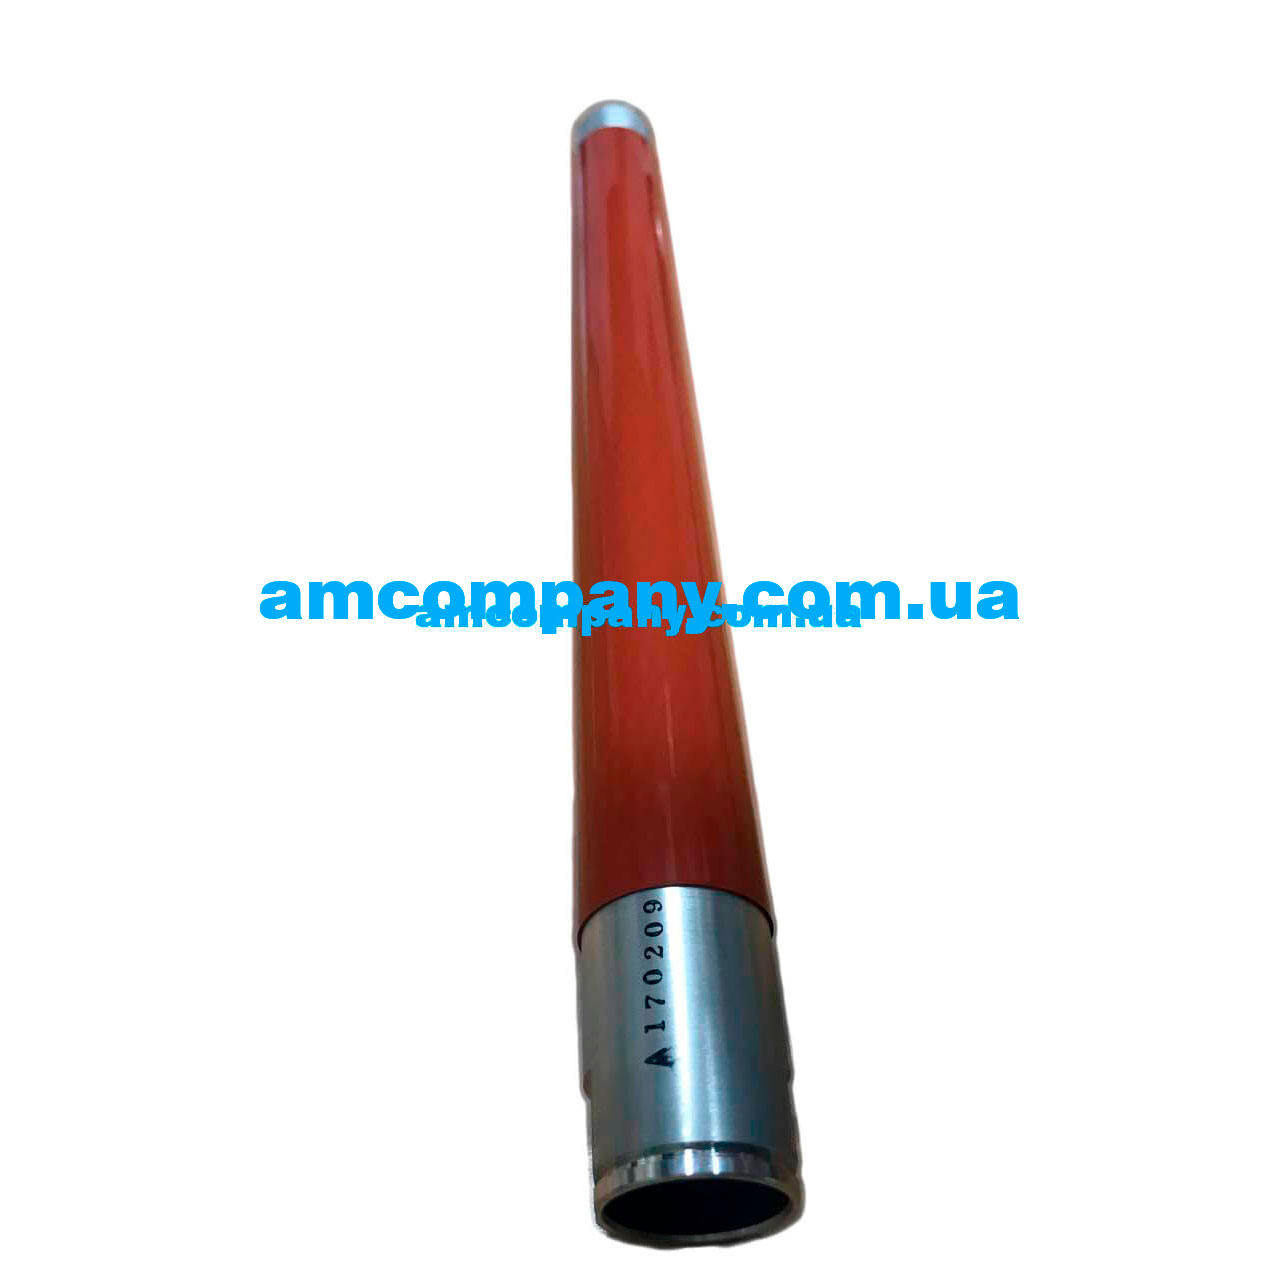 Нагревательный вал фьюзермодуля (Fuser Heater Roll) Xerox DC 240/ 250/ 242/ 252/ 260; WC 7655/ 7665/ 7675/ 7755/ 7765/ 7775; Digital Color Press 700 / 770 / 700i; Color 550/ 560/ 570/ C60/ C70/ C75/ J75( 59k33390 )